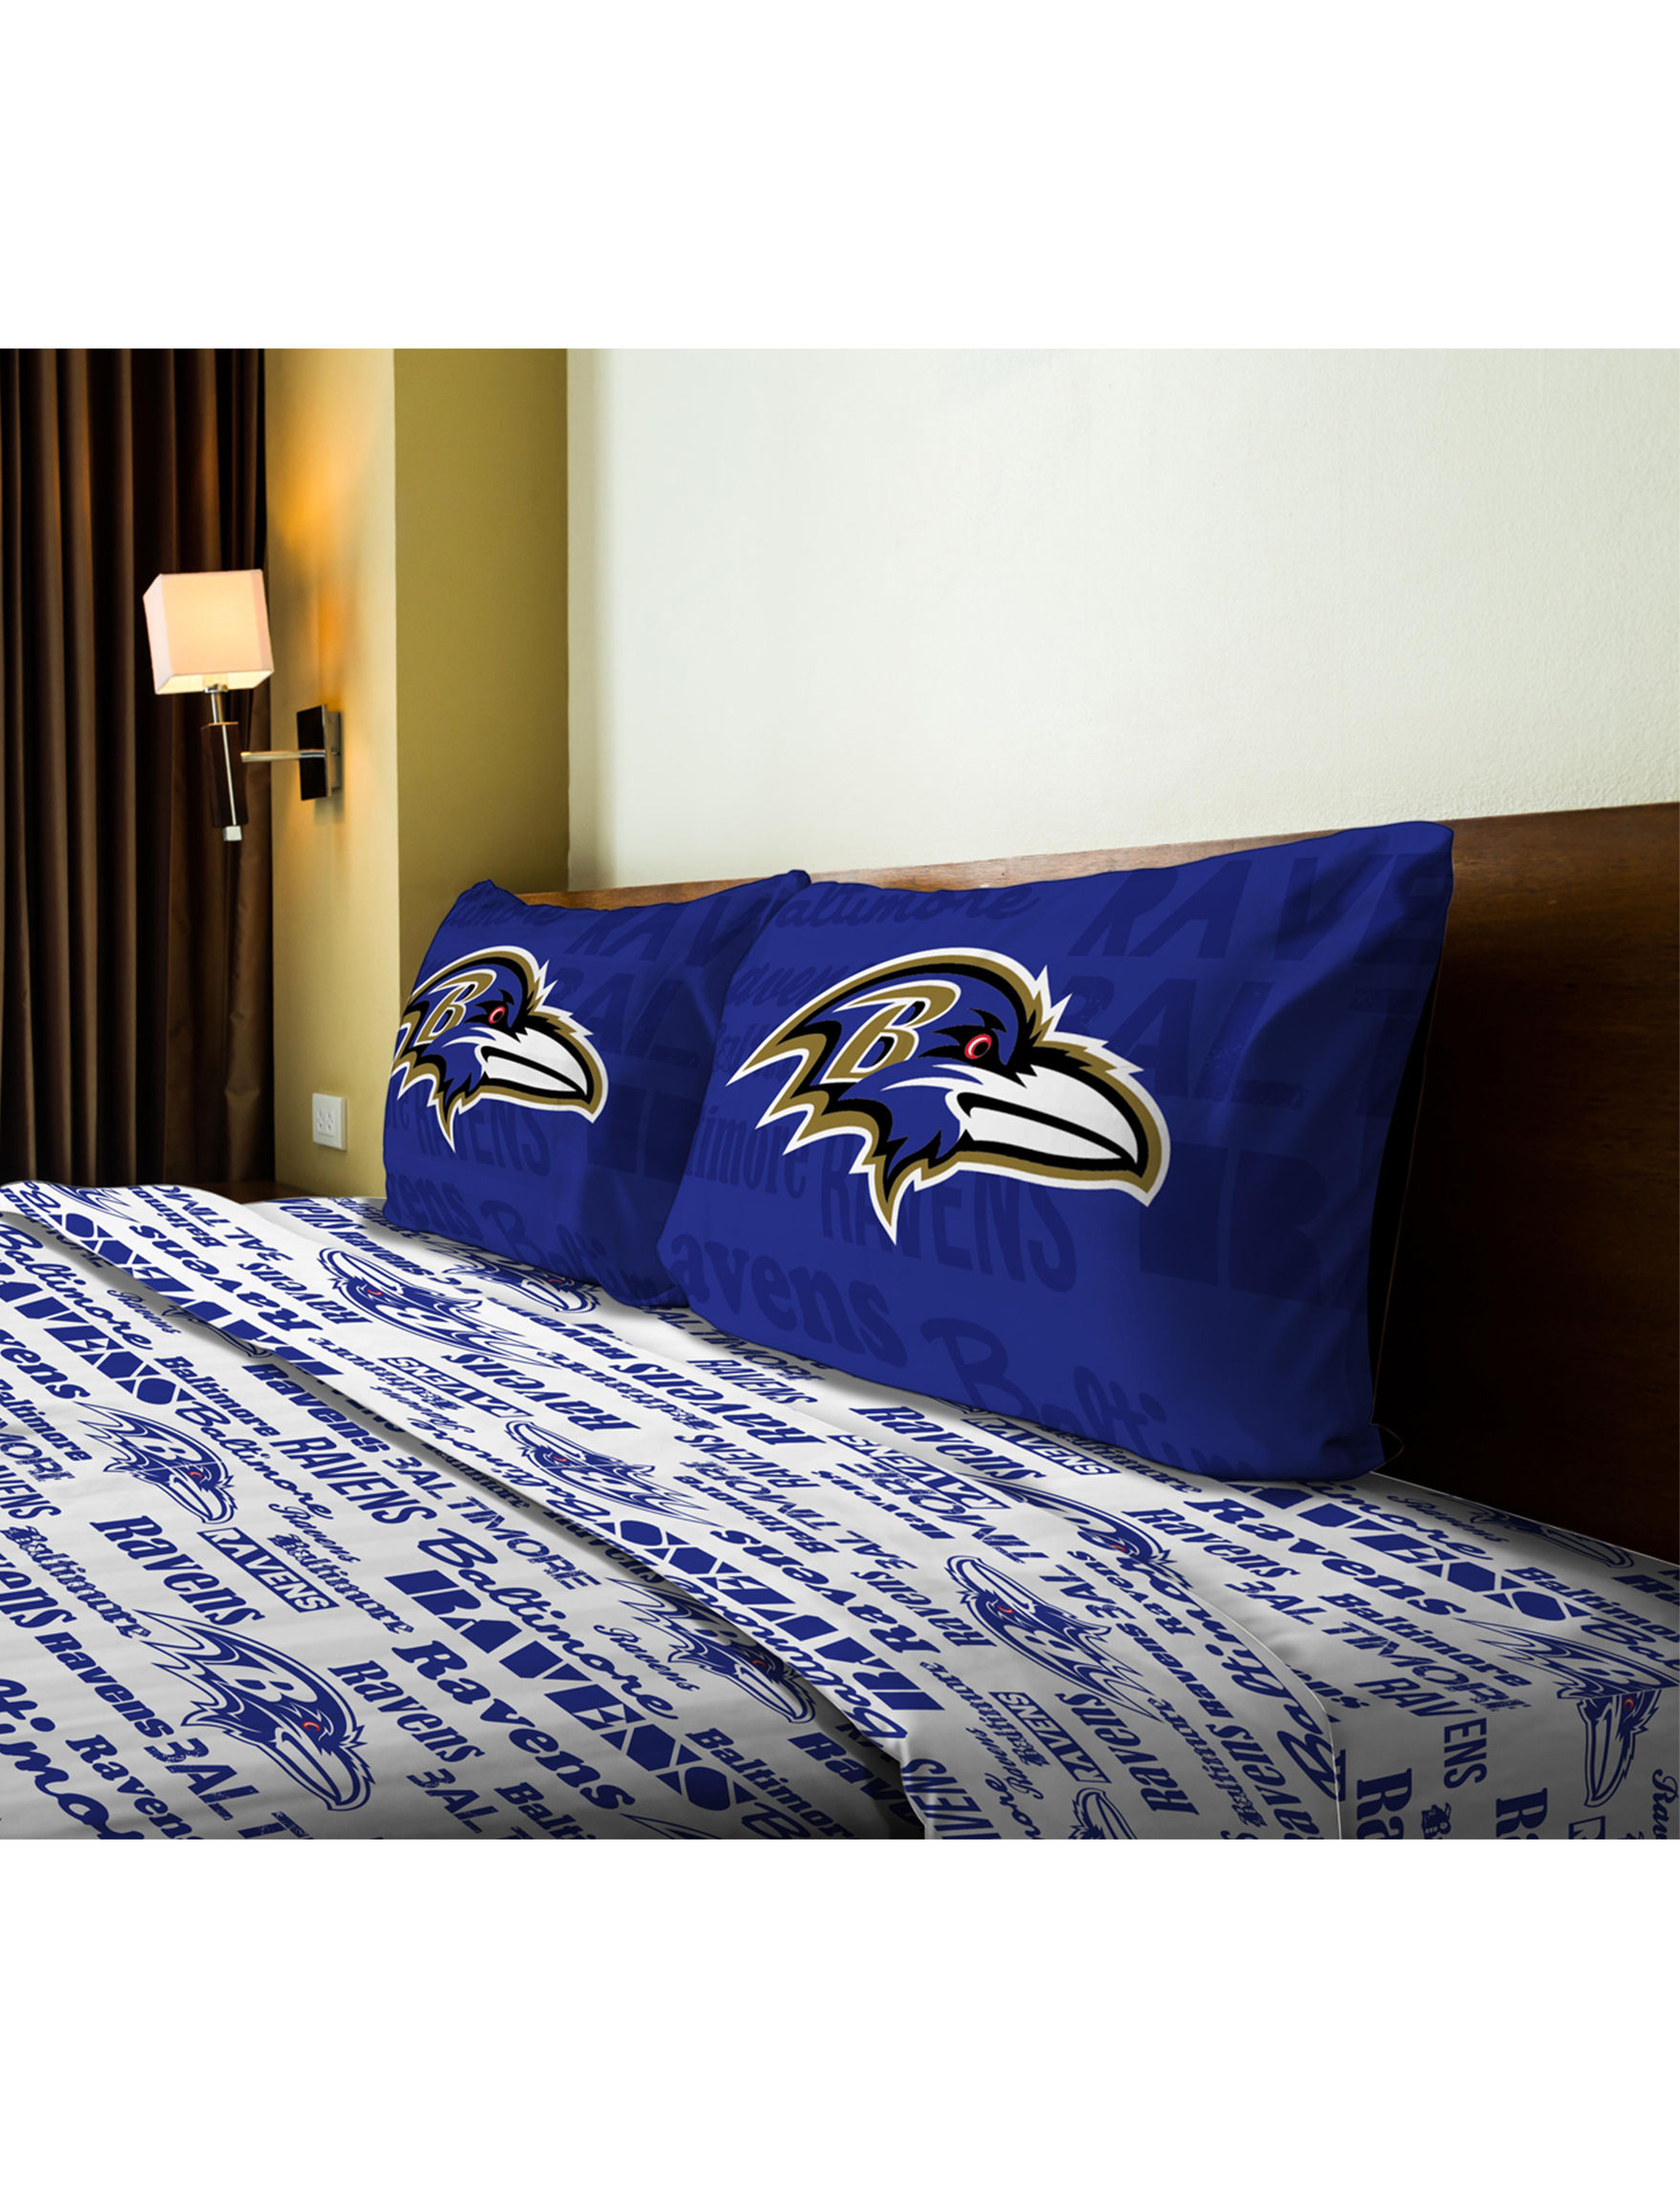 The Northwest Company Blue / White Sheets & Pillowcases